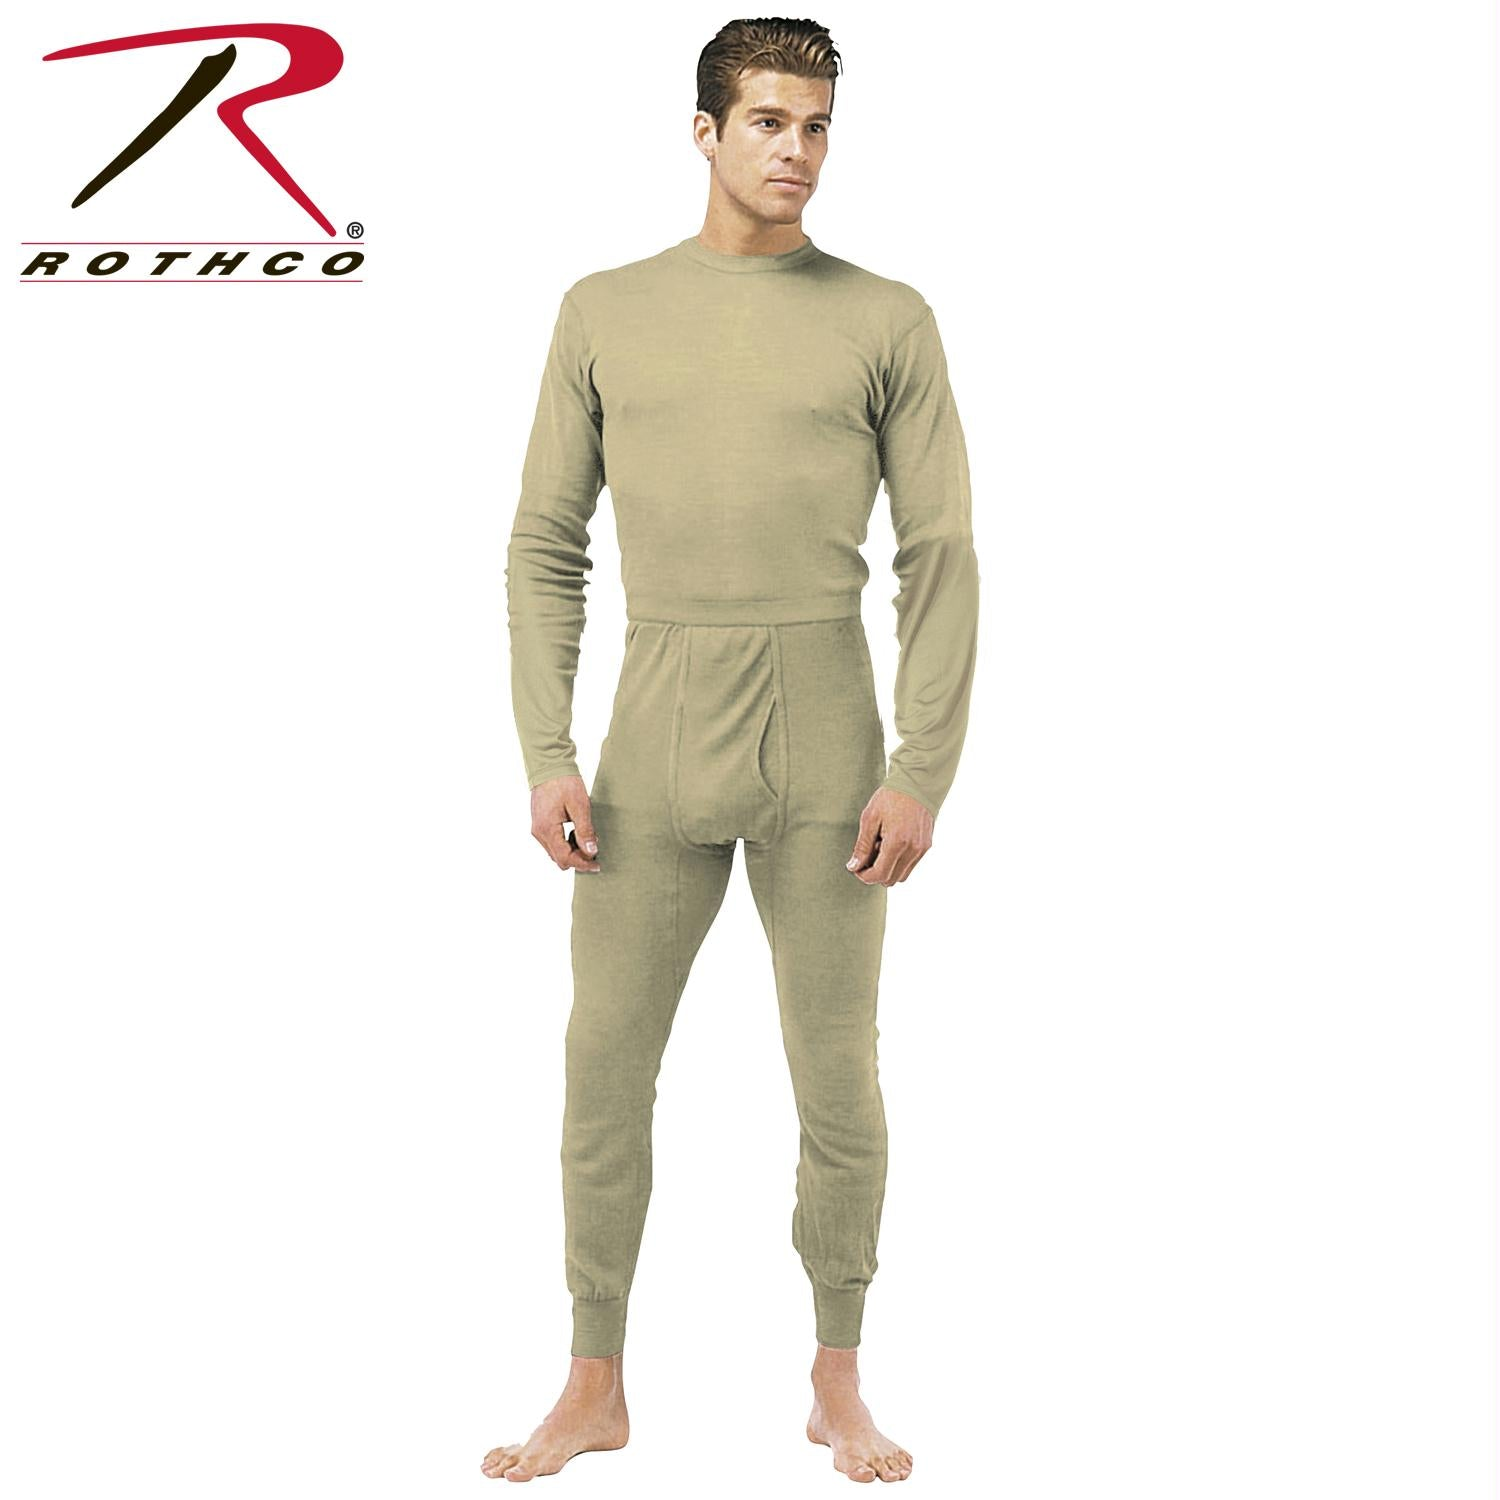 Rothco Gen III Silk Weight Underwear Top